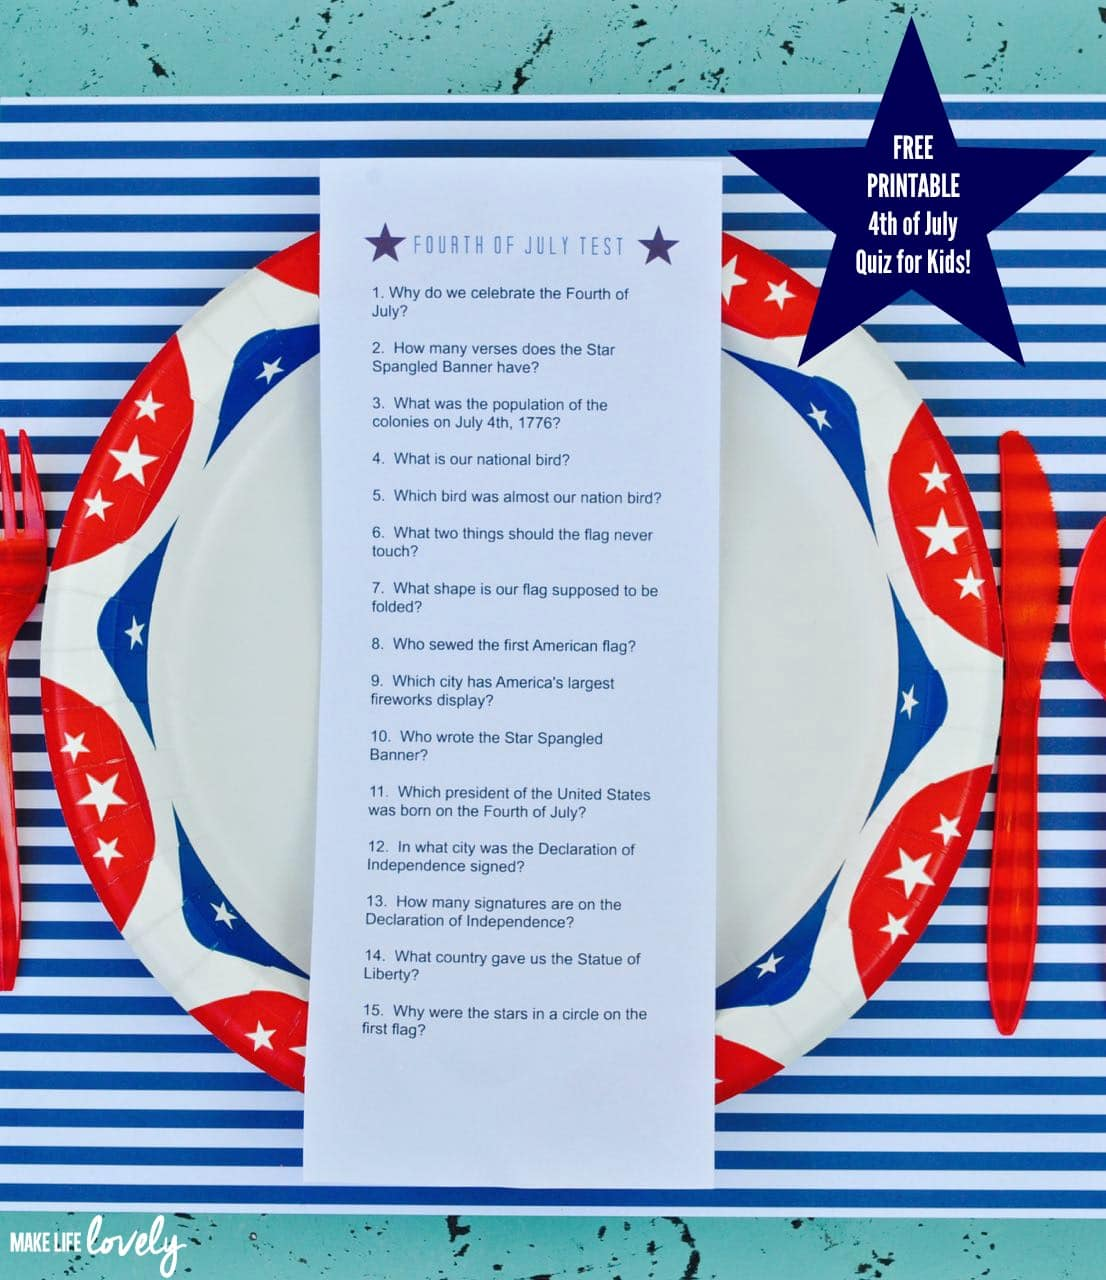 Free Printable Fourth Of July Quiz For Kids